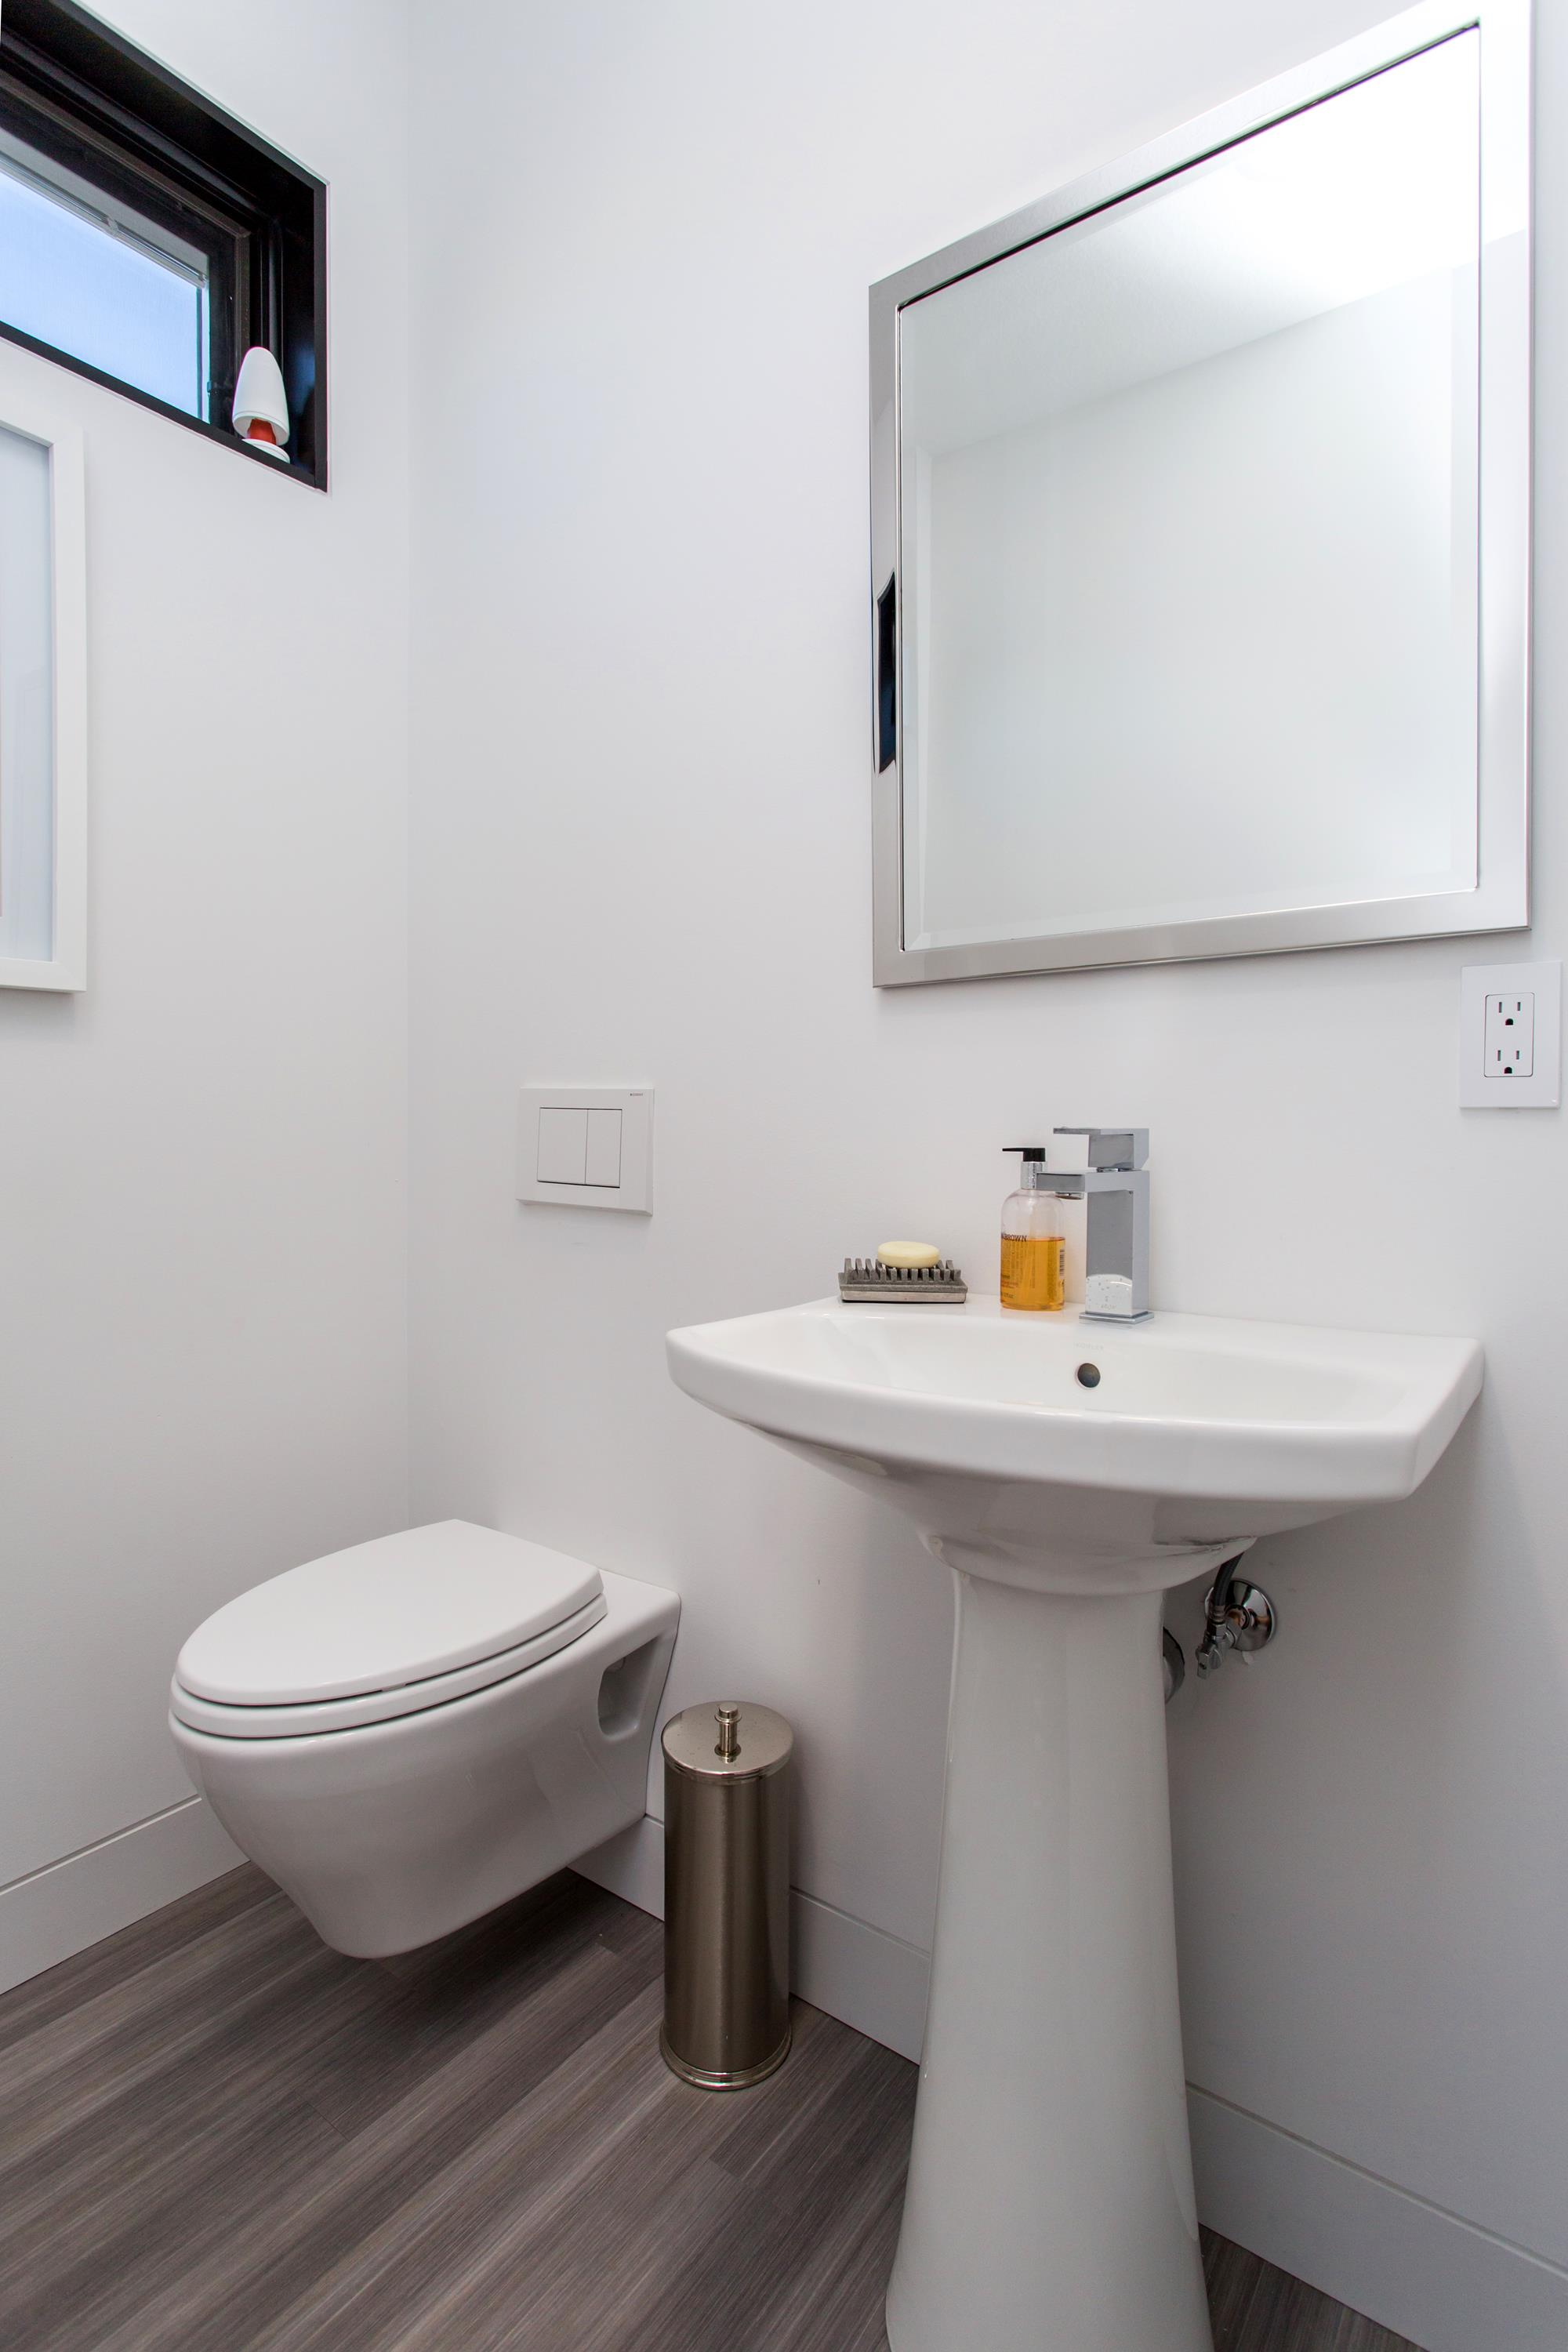 Bath with wall hung toilet